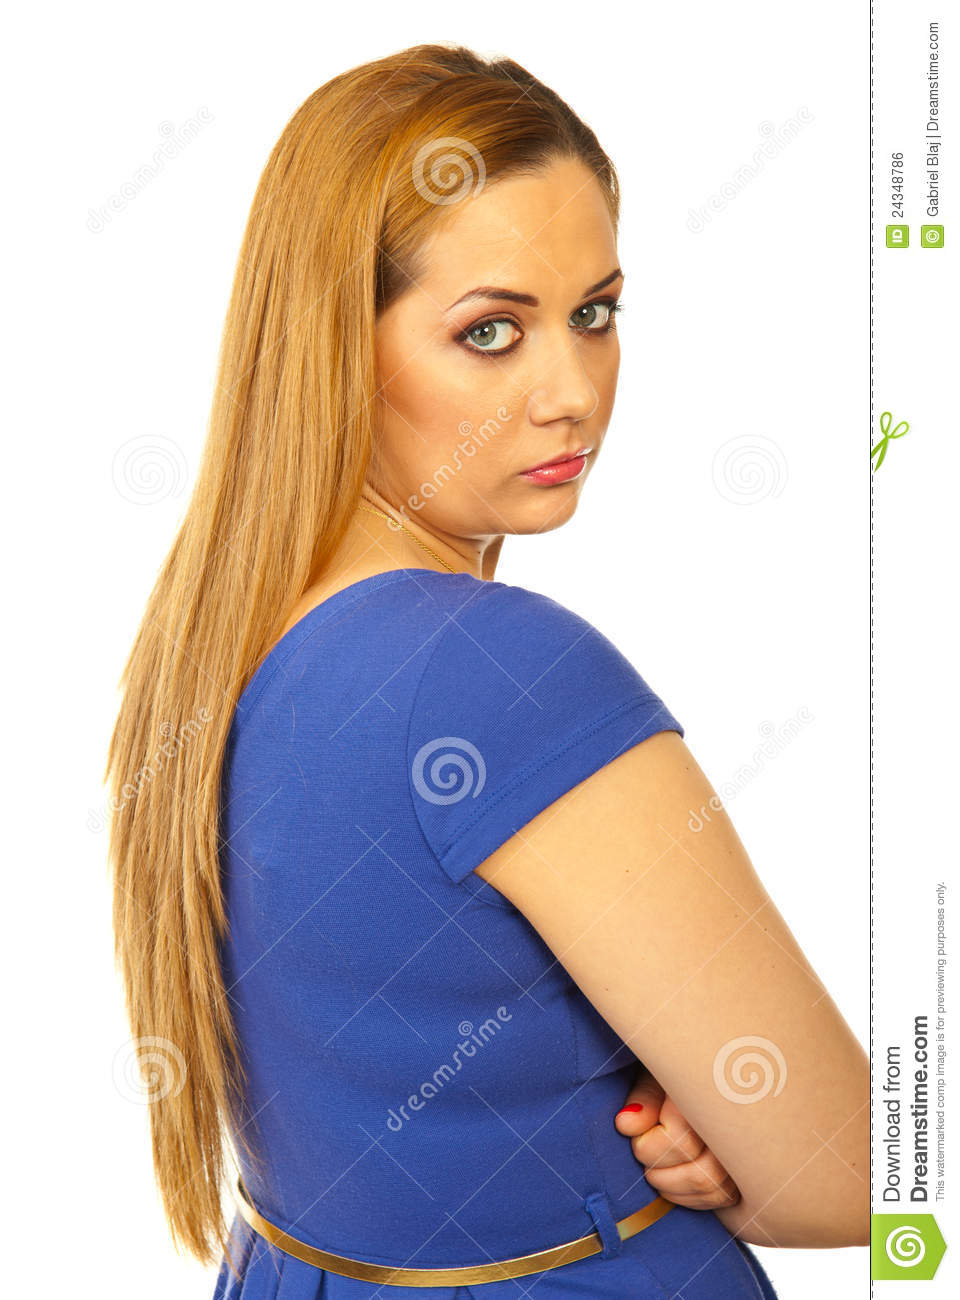 Sad Woman Looking Over Shoulder Royalty Free Stock Image ...